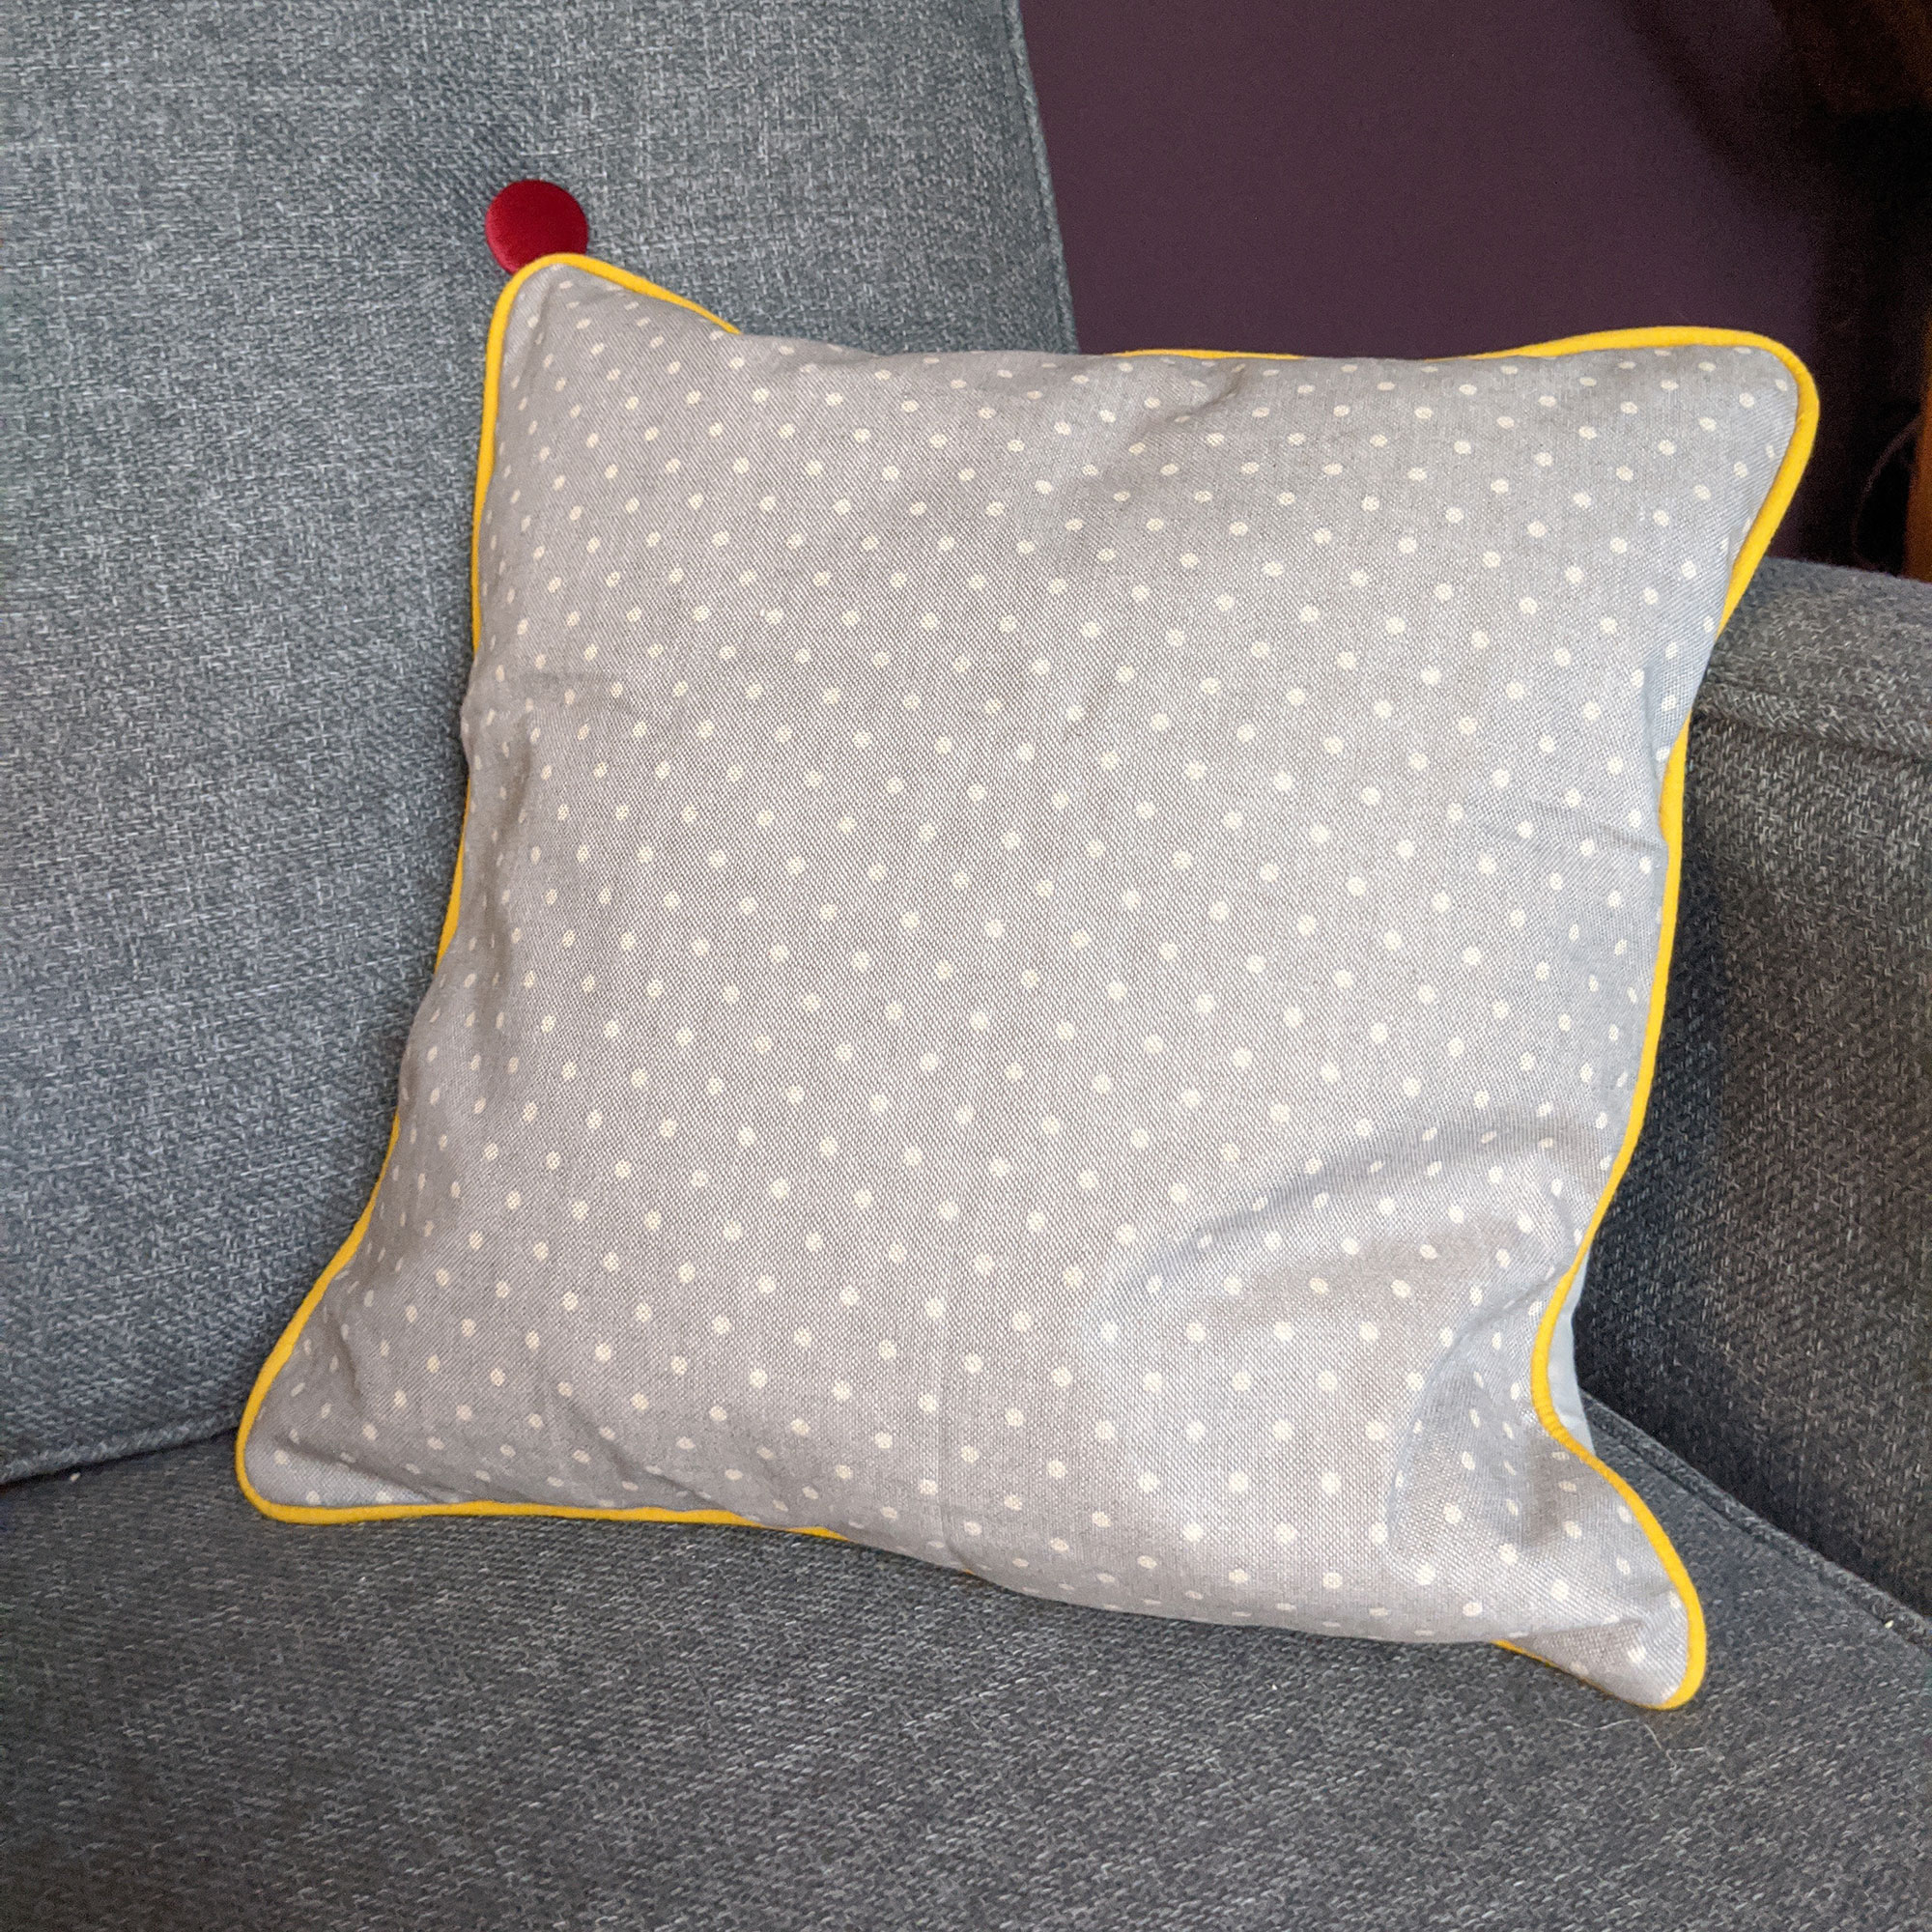 Piped Cushion Sewing Day Course